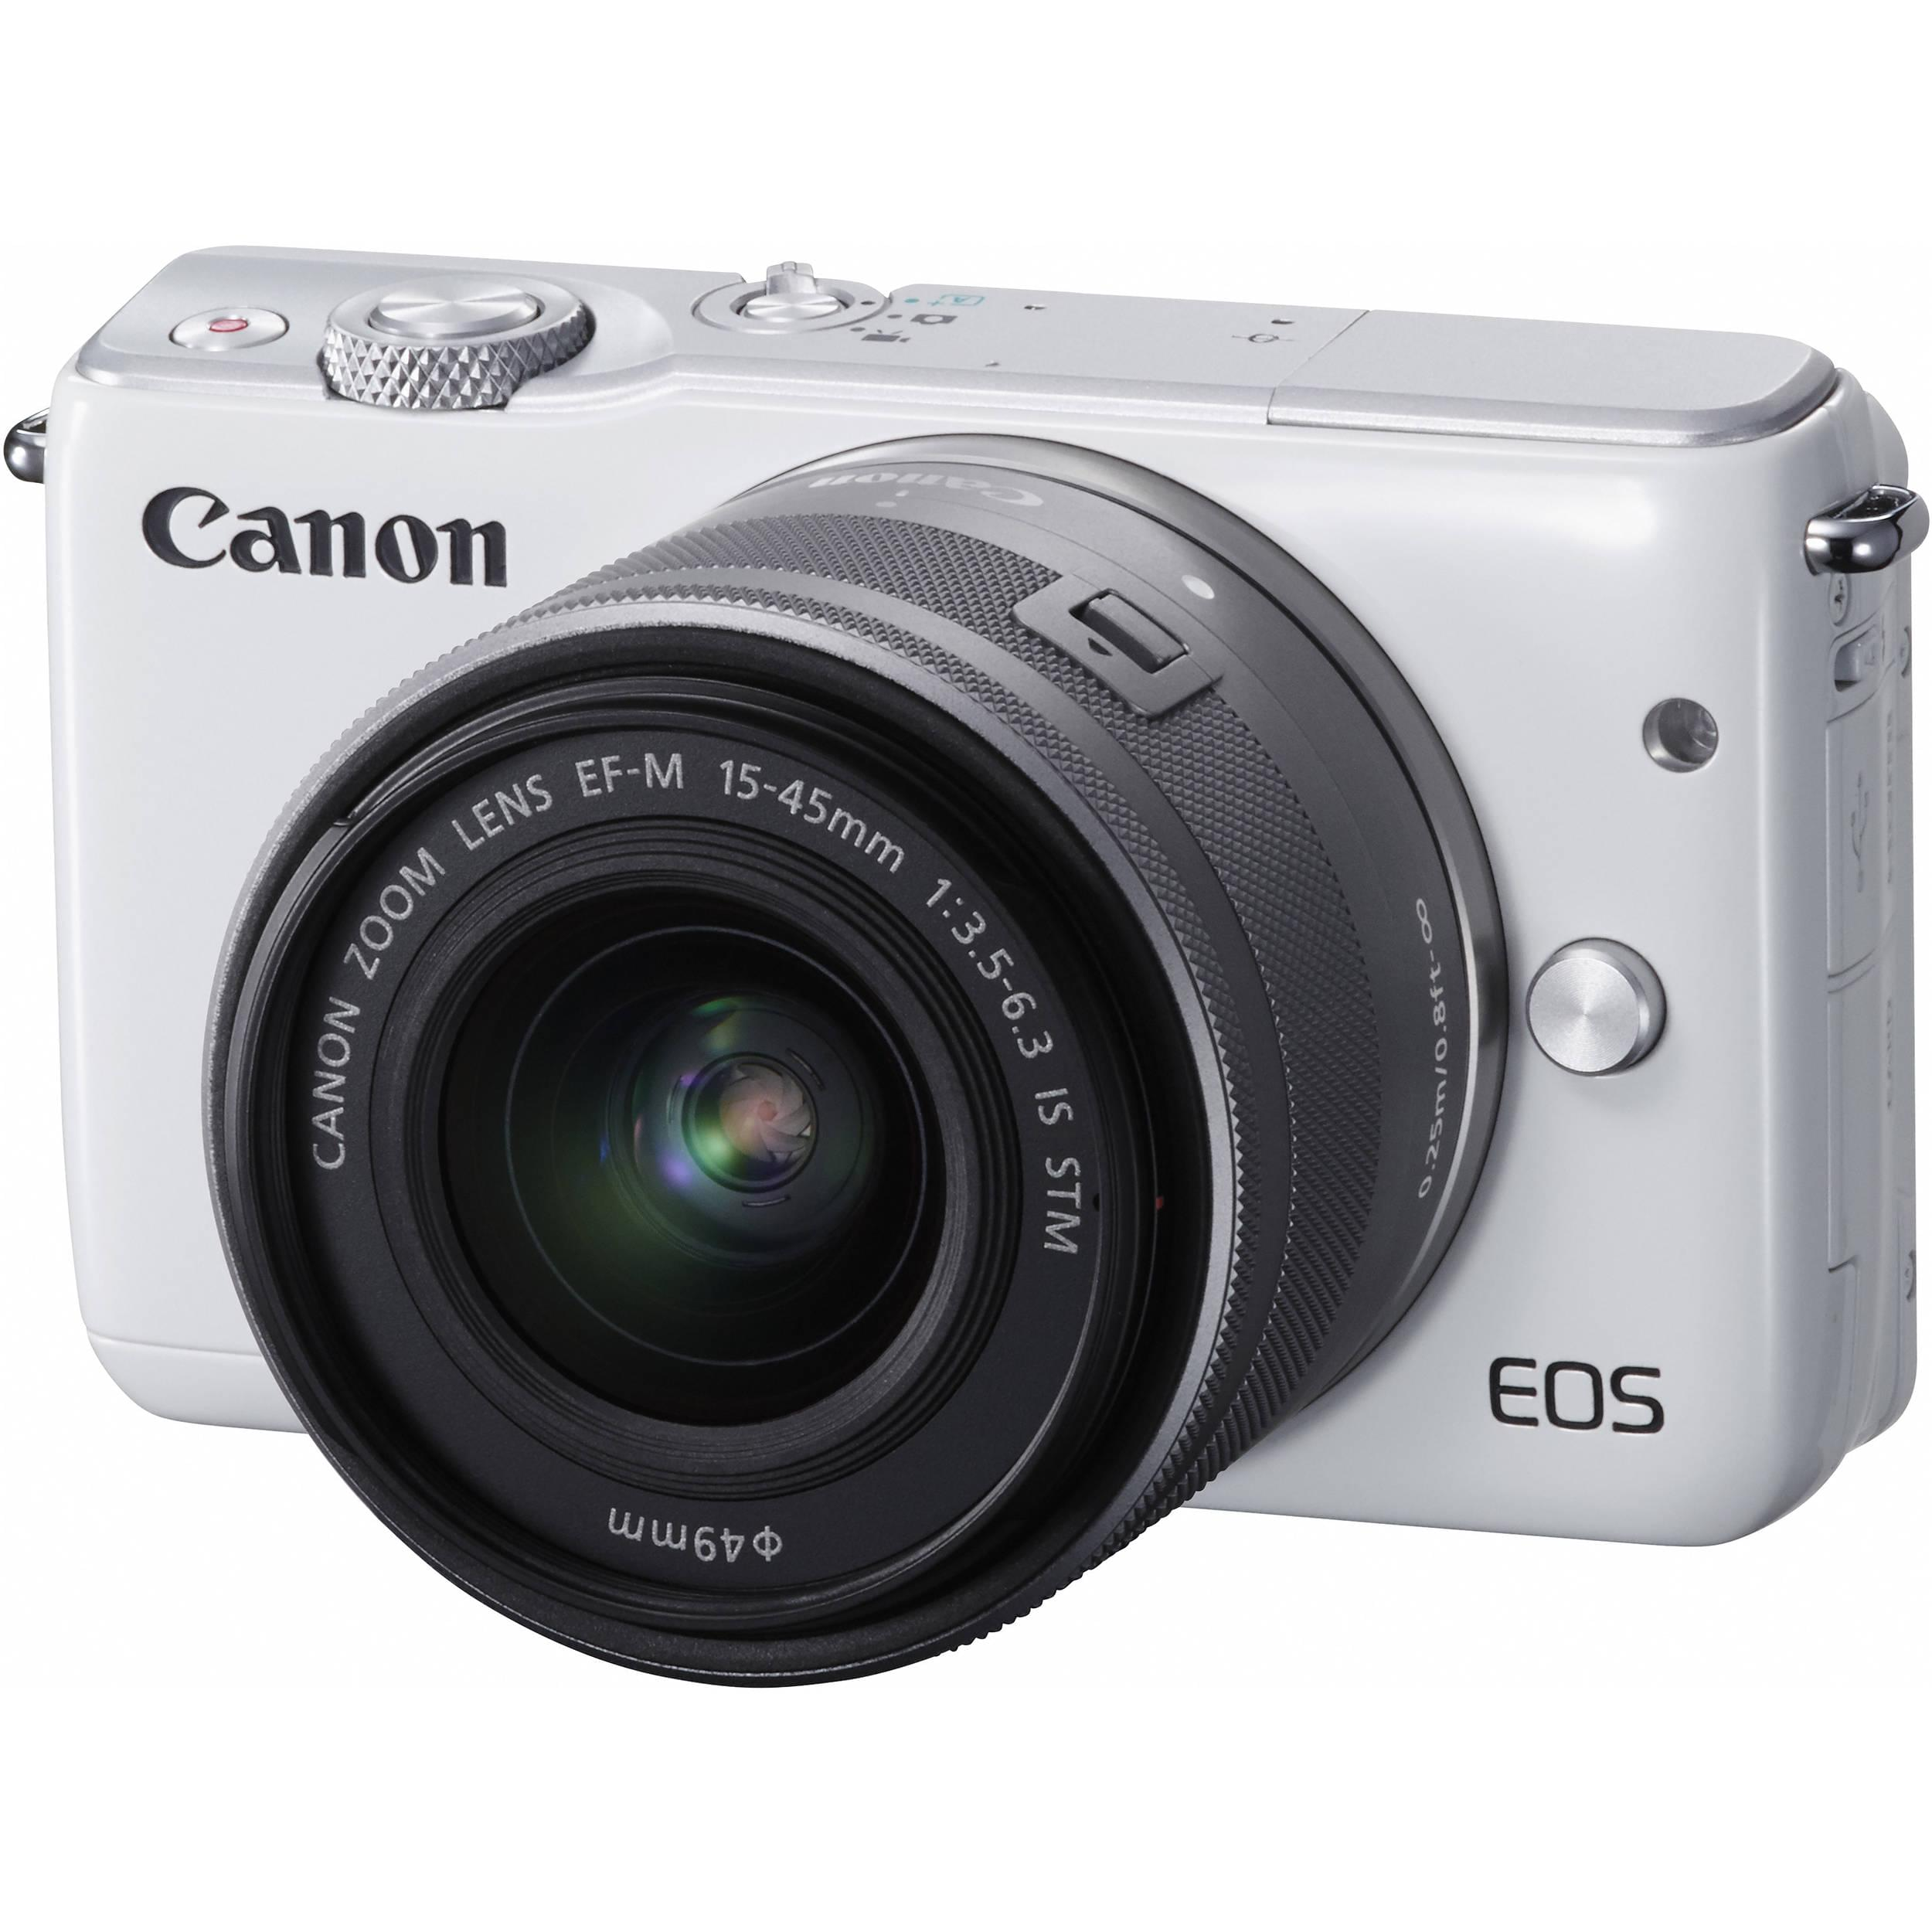 Canon EOS M10 + Kit EF-M 18-55mm IS STM